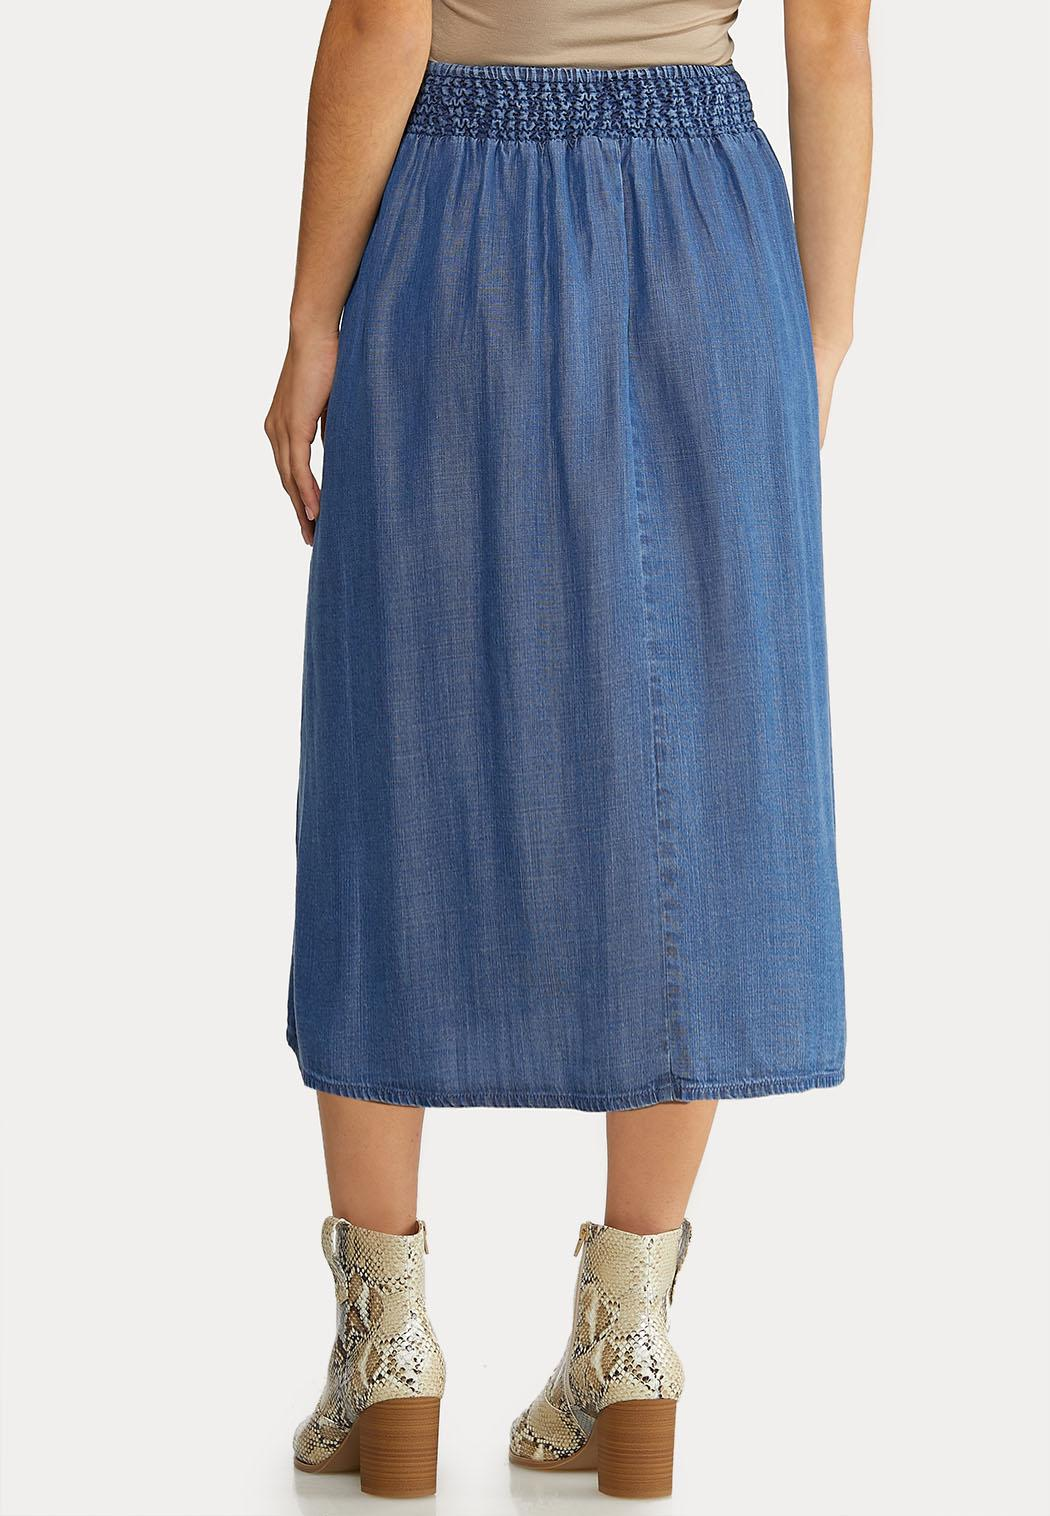 Plus Size Chambray Button Down Skirt (Item #44080260)